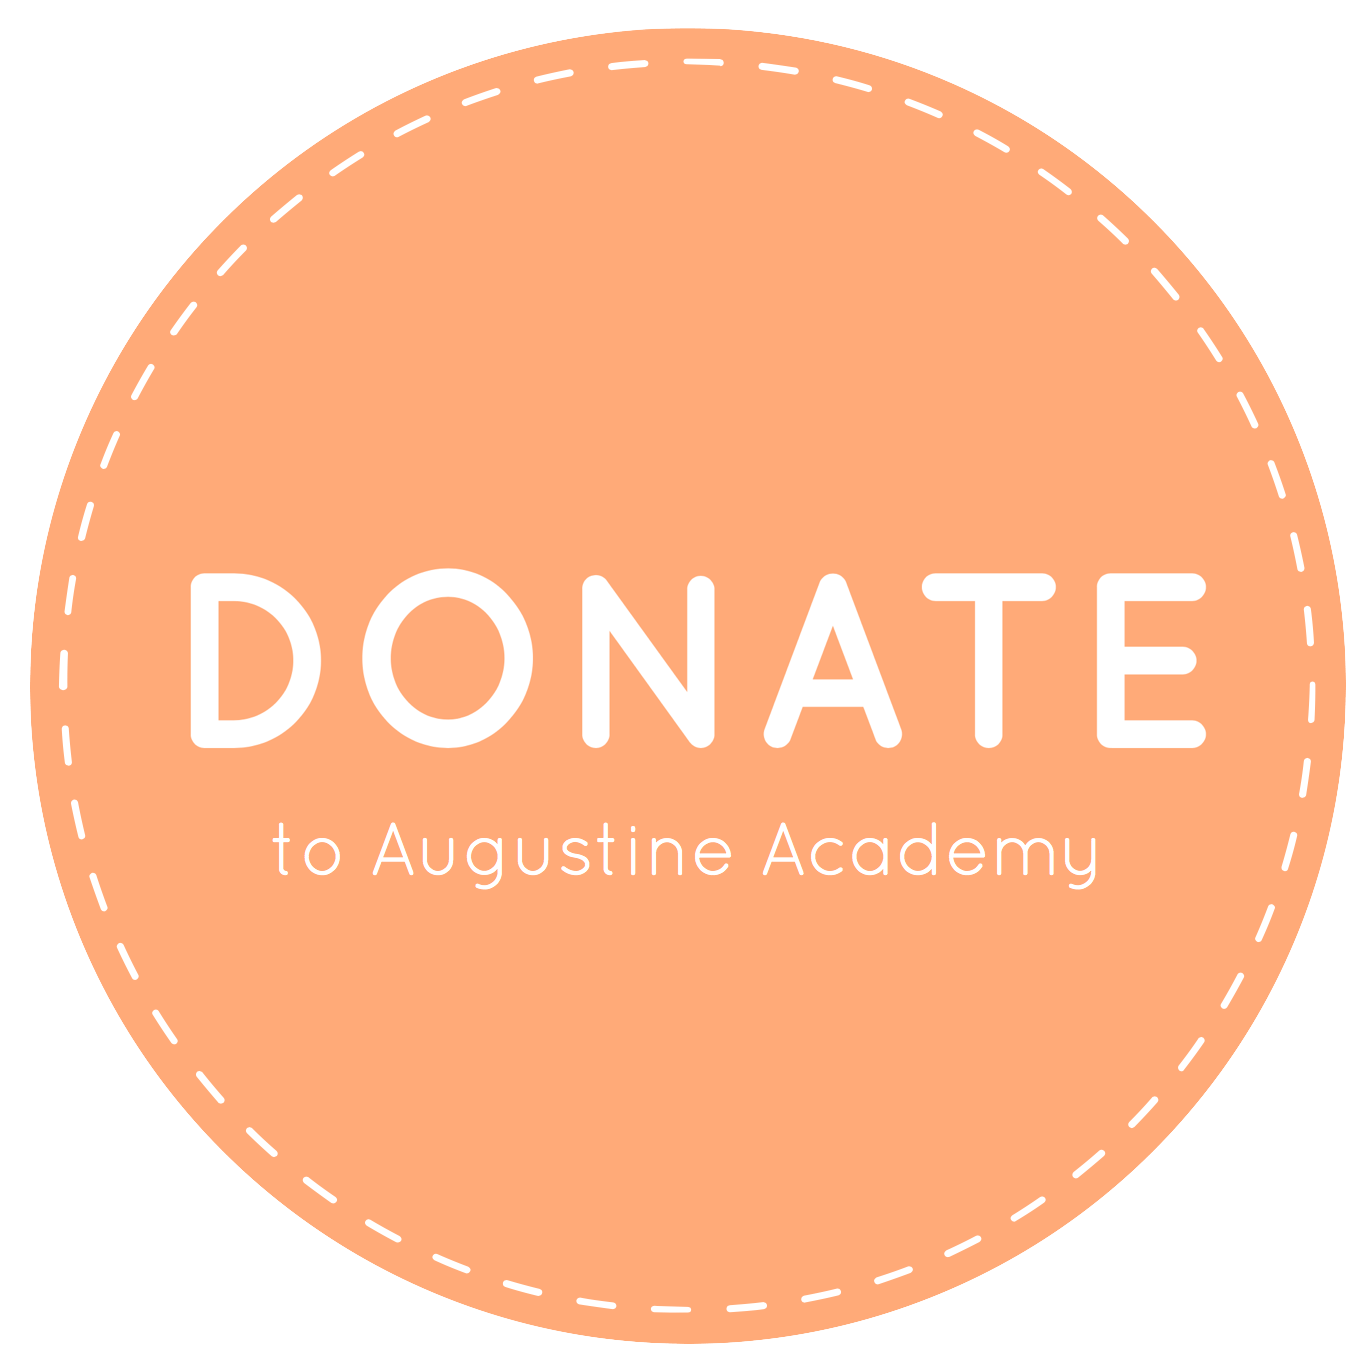 Donate to Augustine Academy